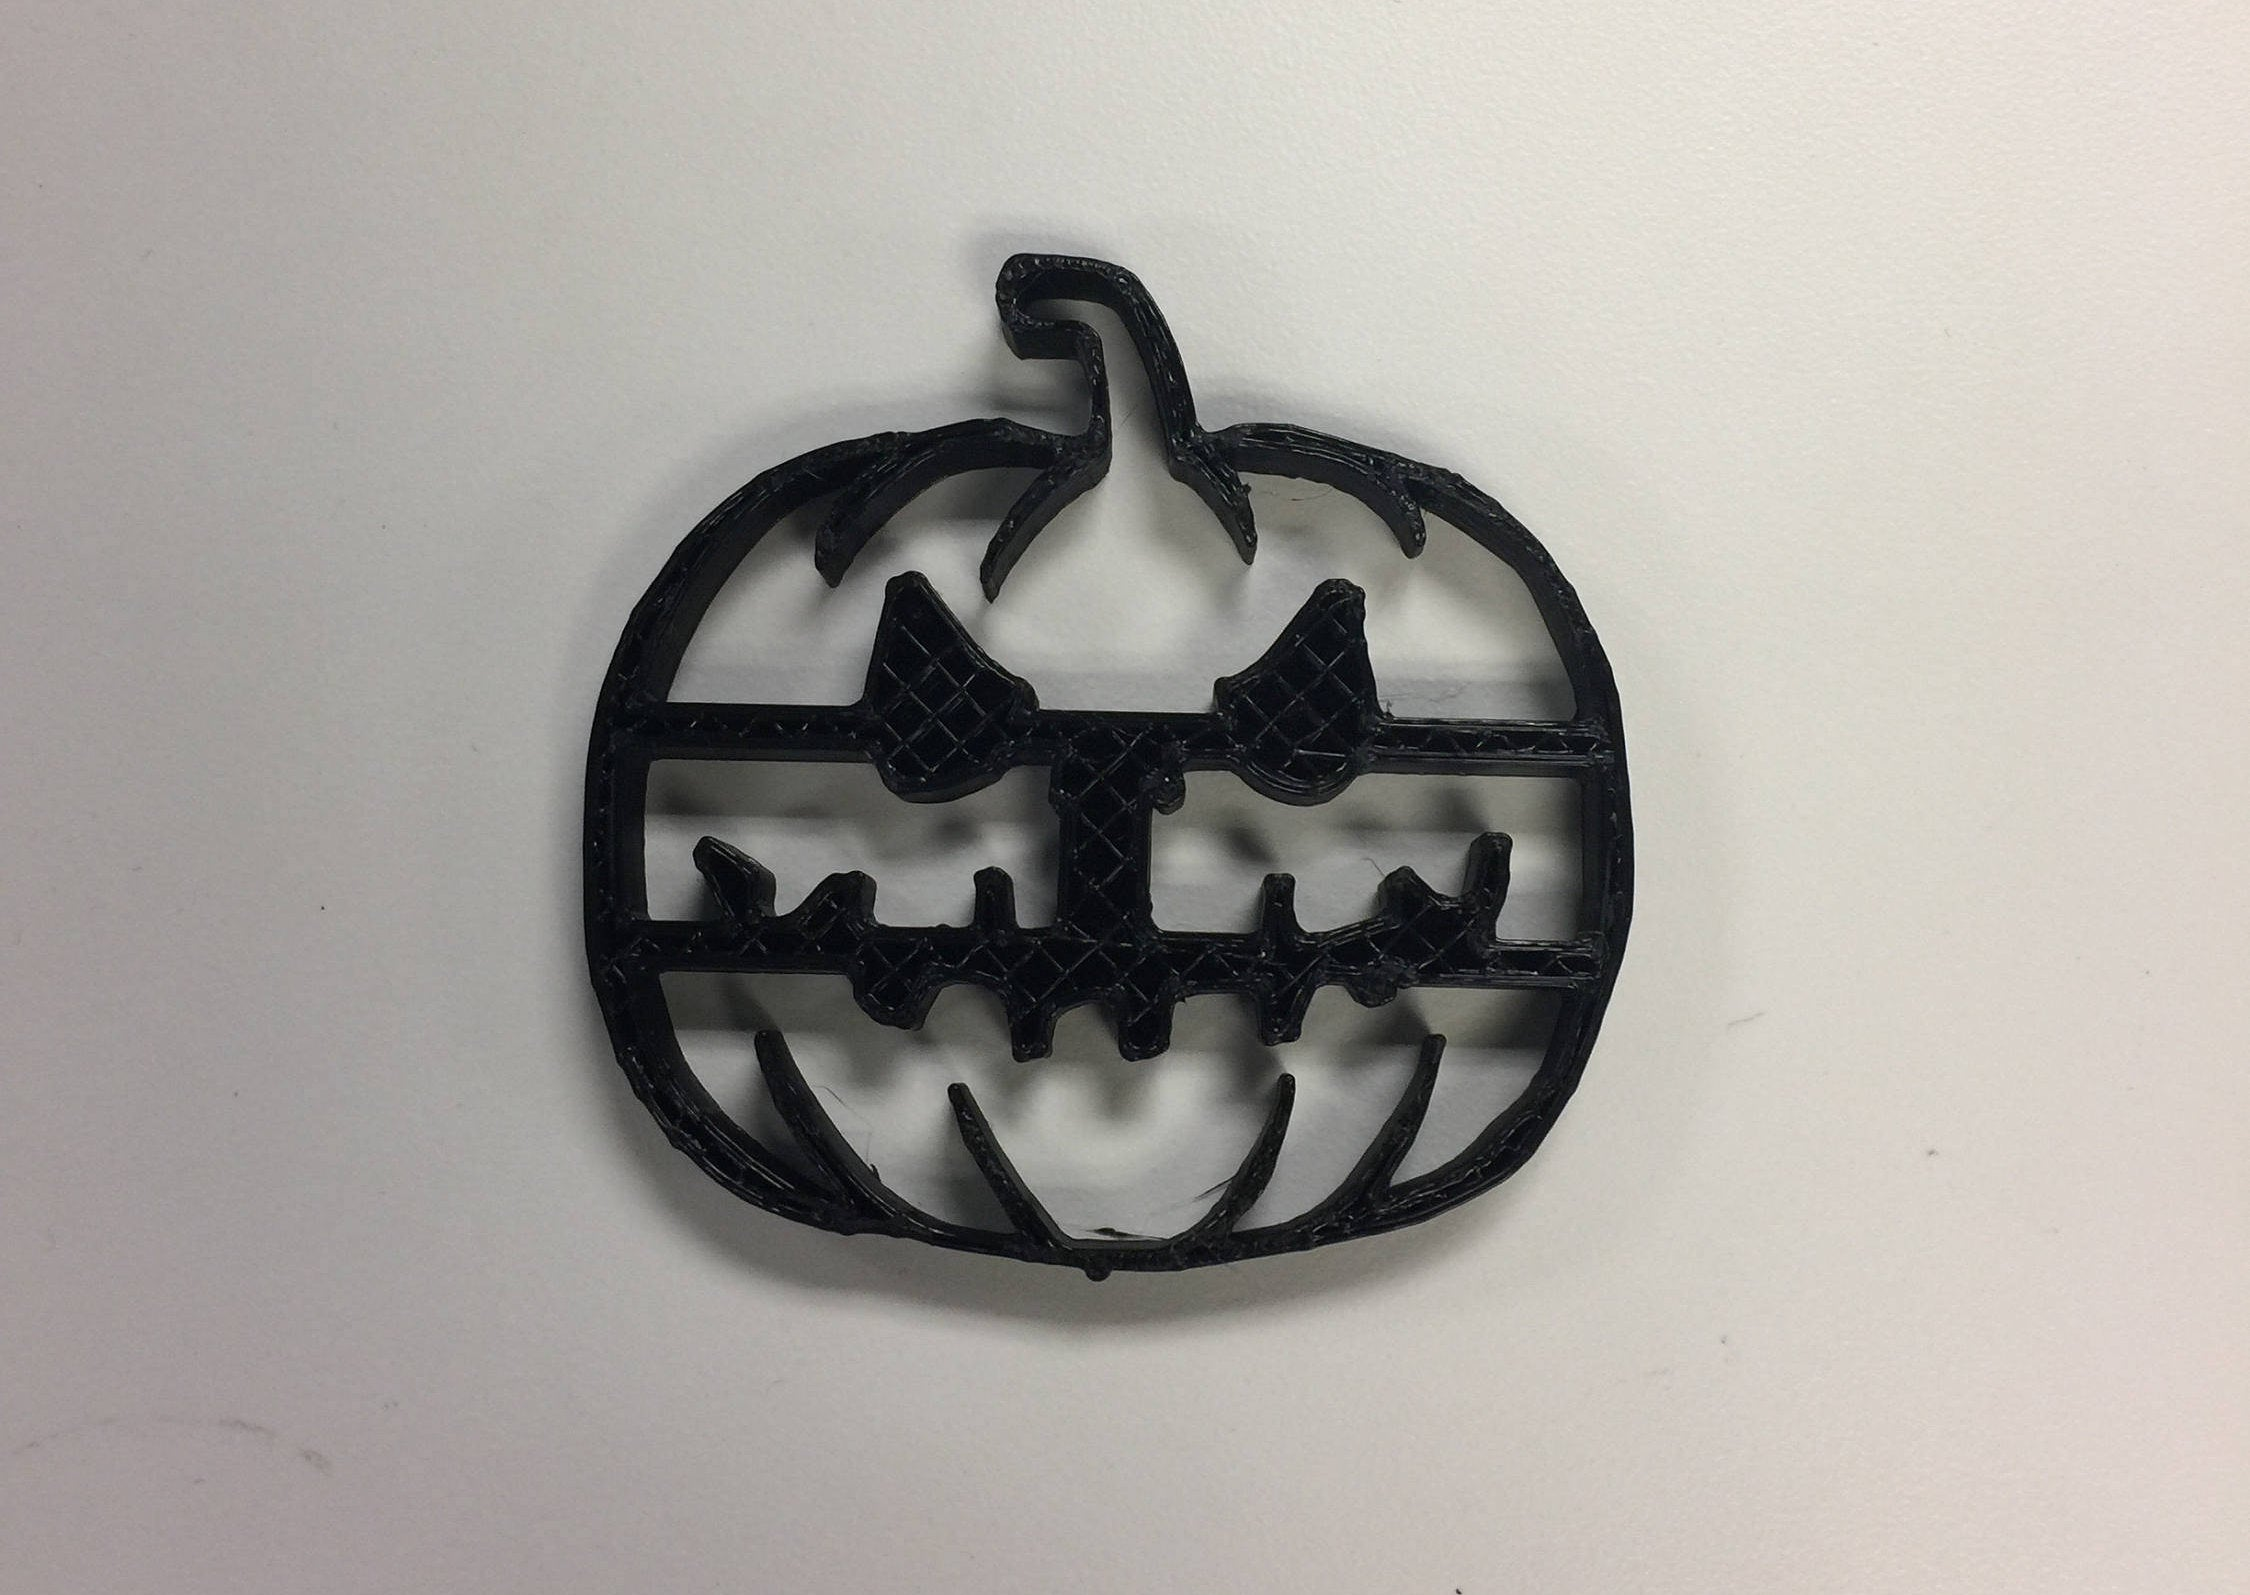 Scary Pumpkin Cookie Cutter ! 3D Printed! Halloween party food!